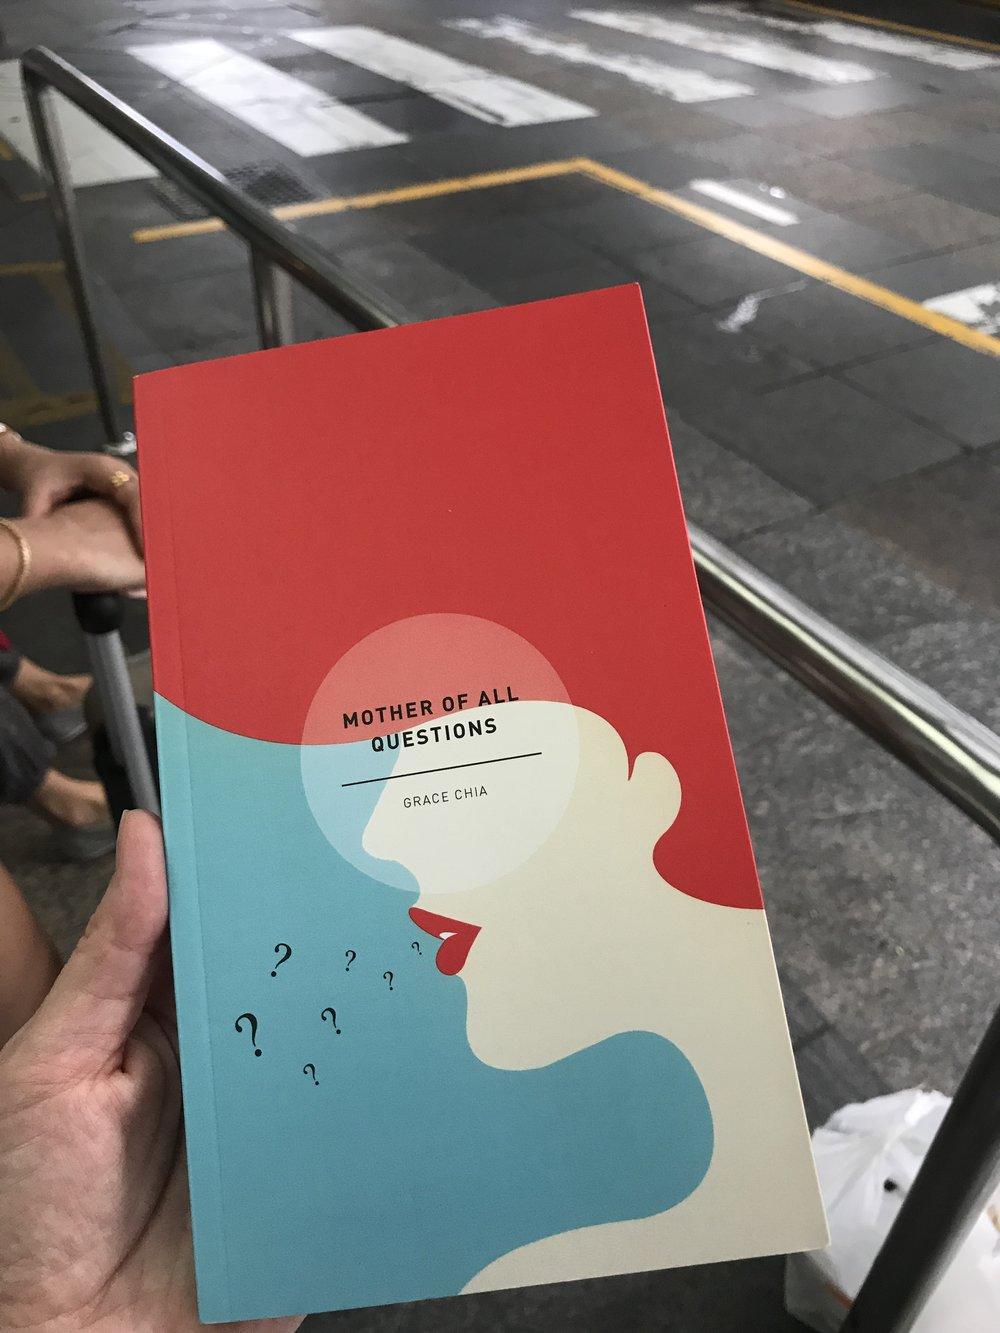 In the taxi queue on the way home - with a copy of my colleague Grace Chia's latest poetry collection